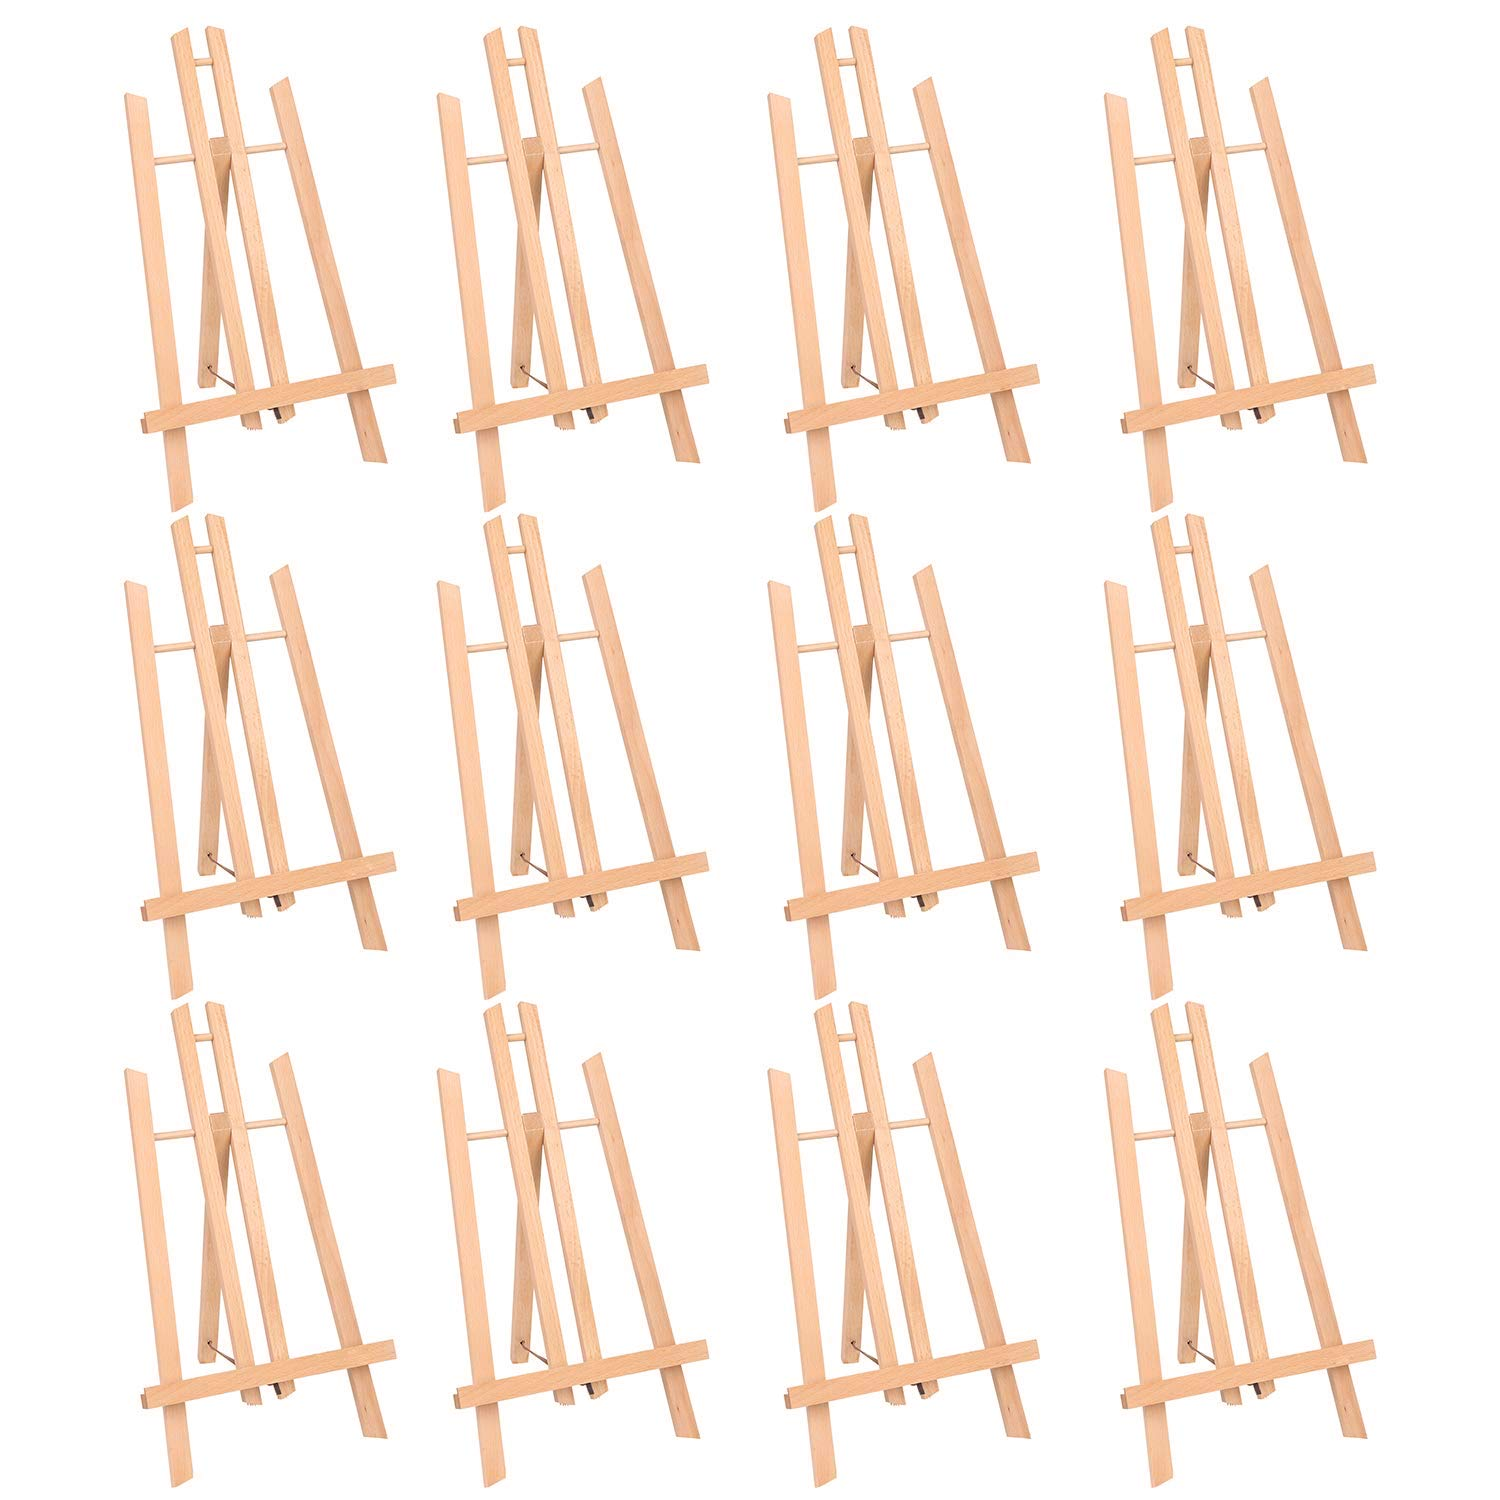 MEEDEN 15.7'' Tall Tabletop Easel - Medium Tabletop Display Wood Easel, for Kids Artist Adults Students Classroom/Parties Painting Display, Standing Easel, Pack of 12